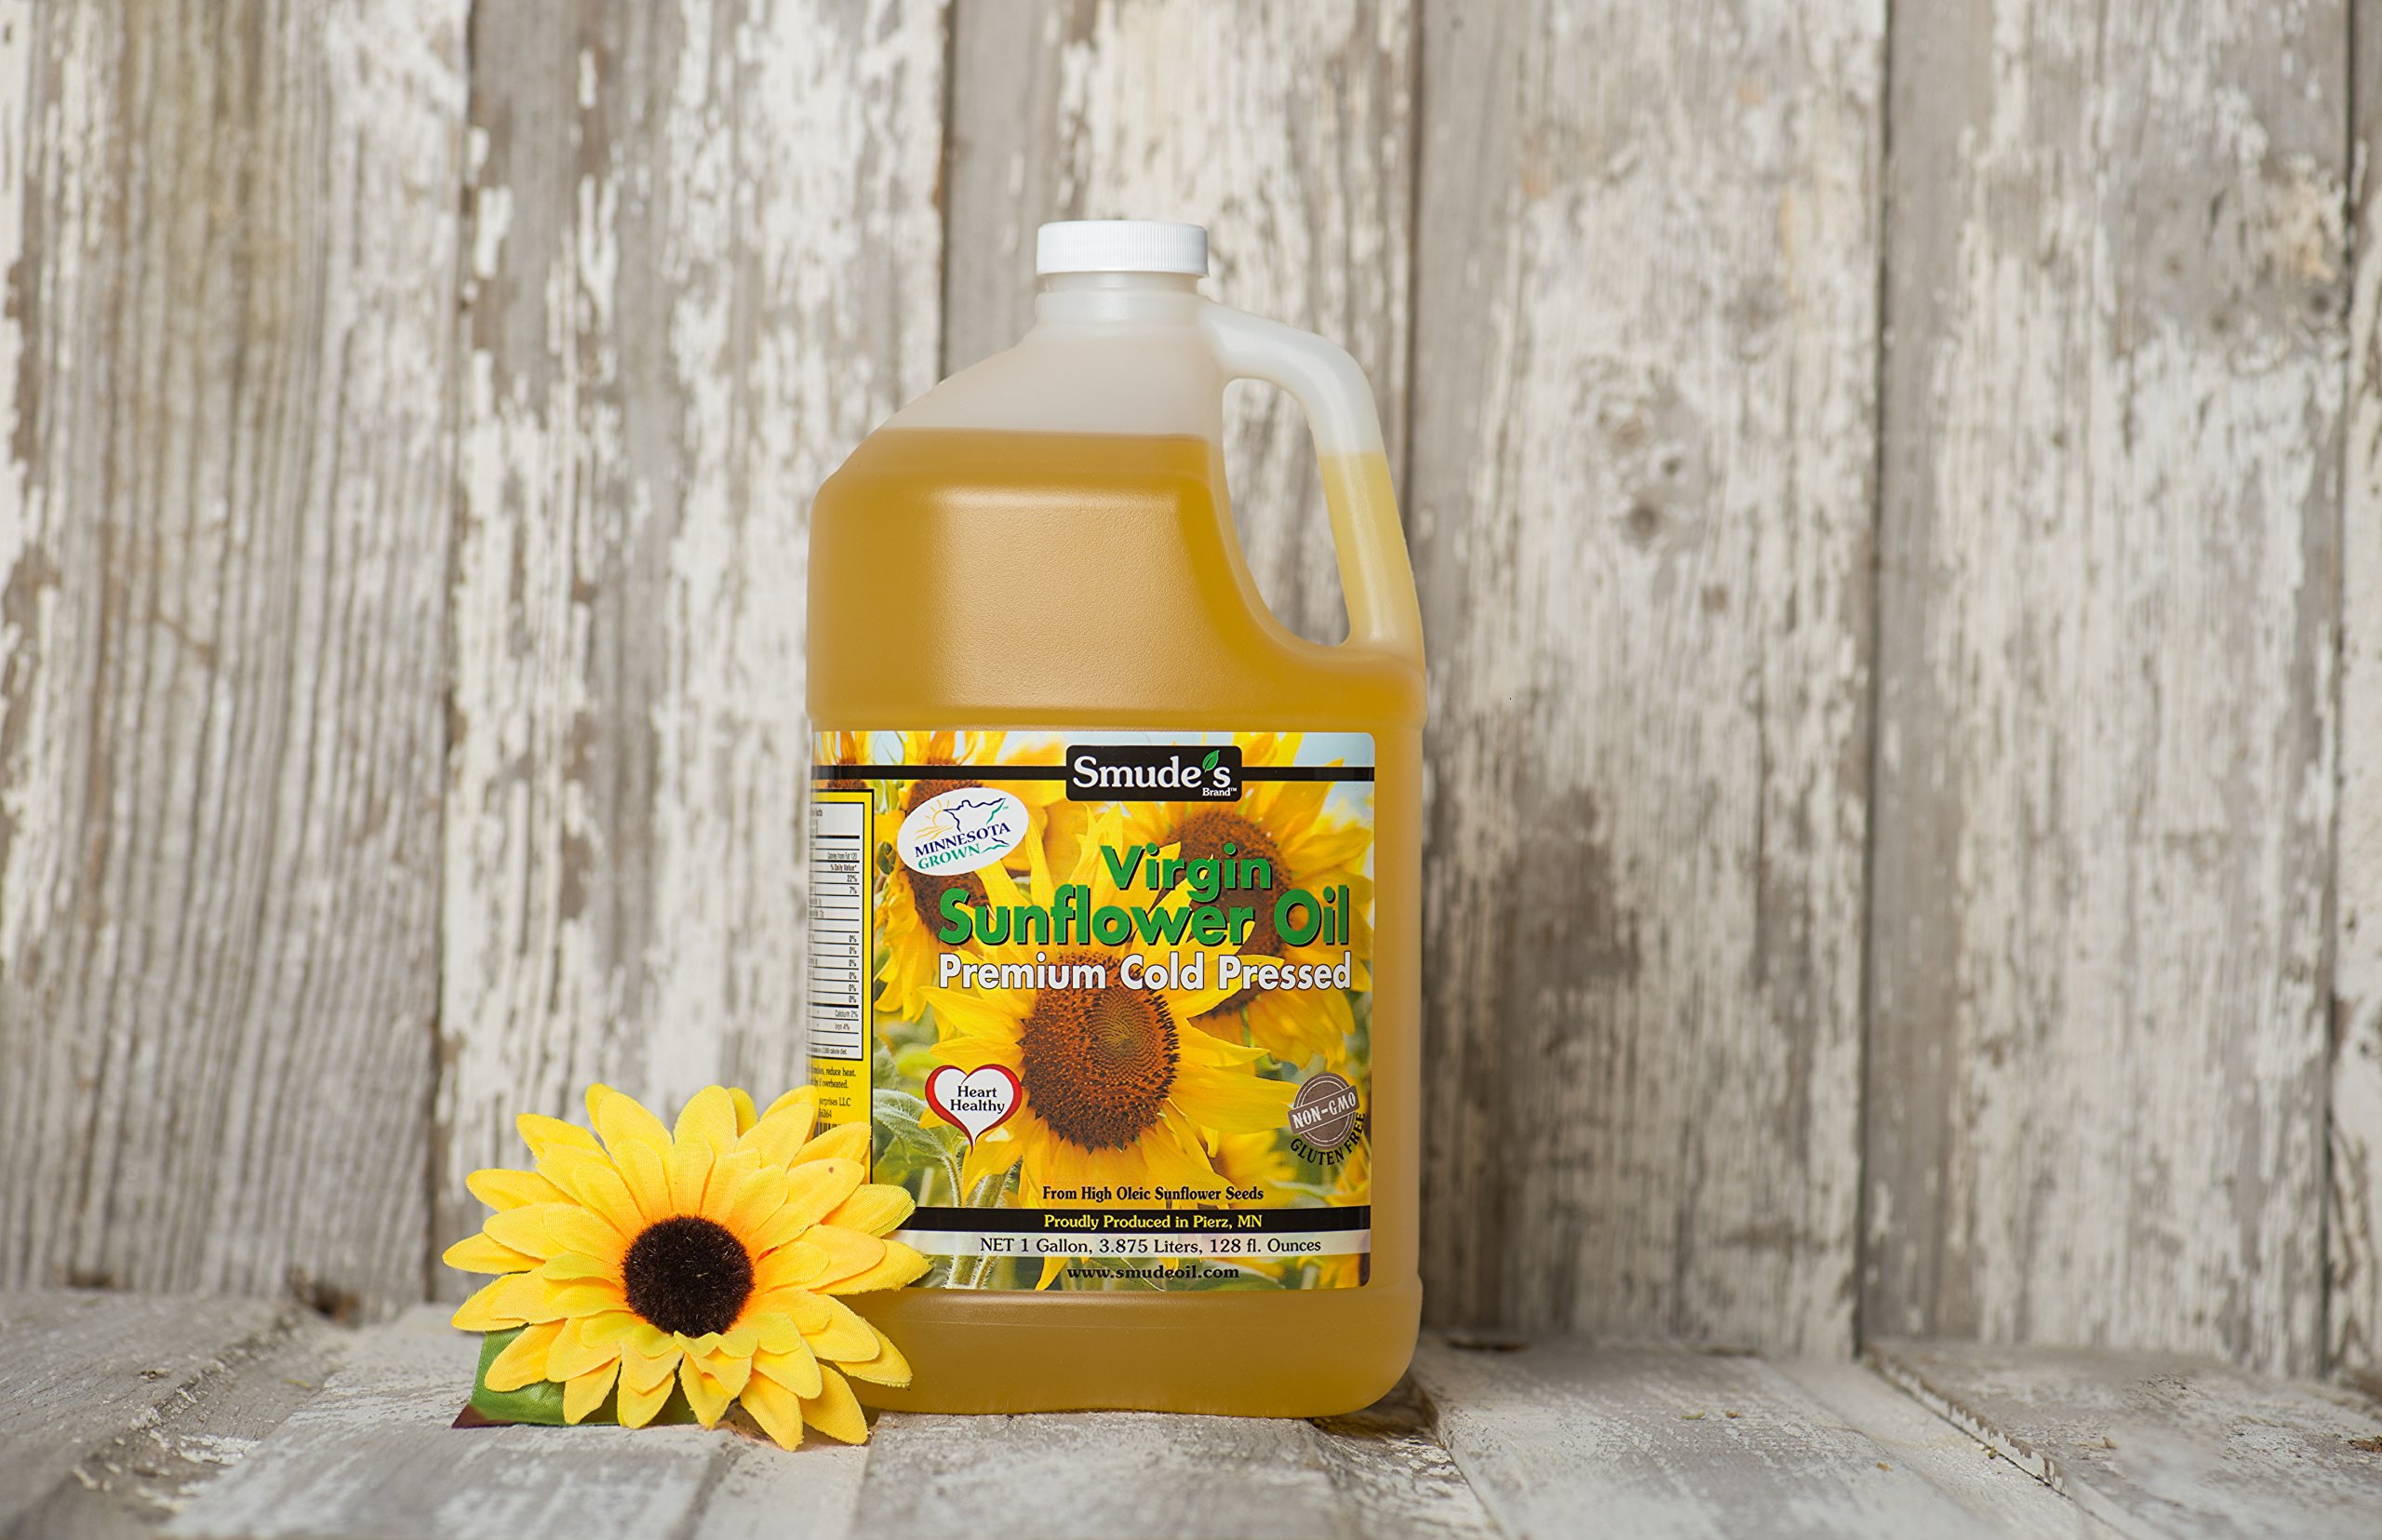 Smude Sunflower Oil 1 Gallon Plastic [Cold Pressed, All Natural, NonGMO Cooking Oil] by Smude's Sunflower Oil (Image #1)